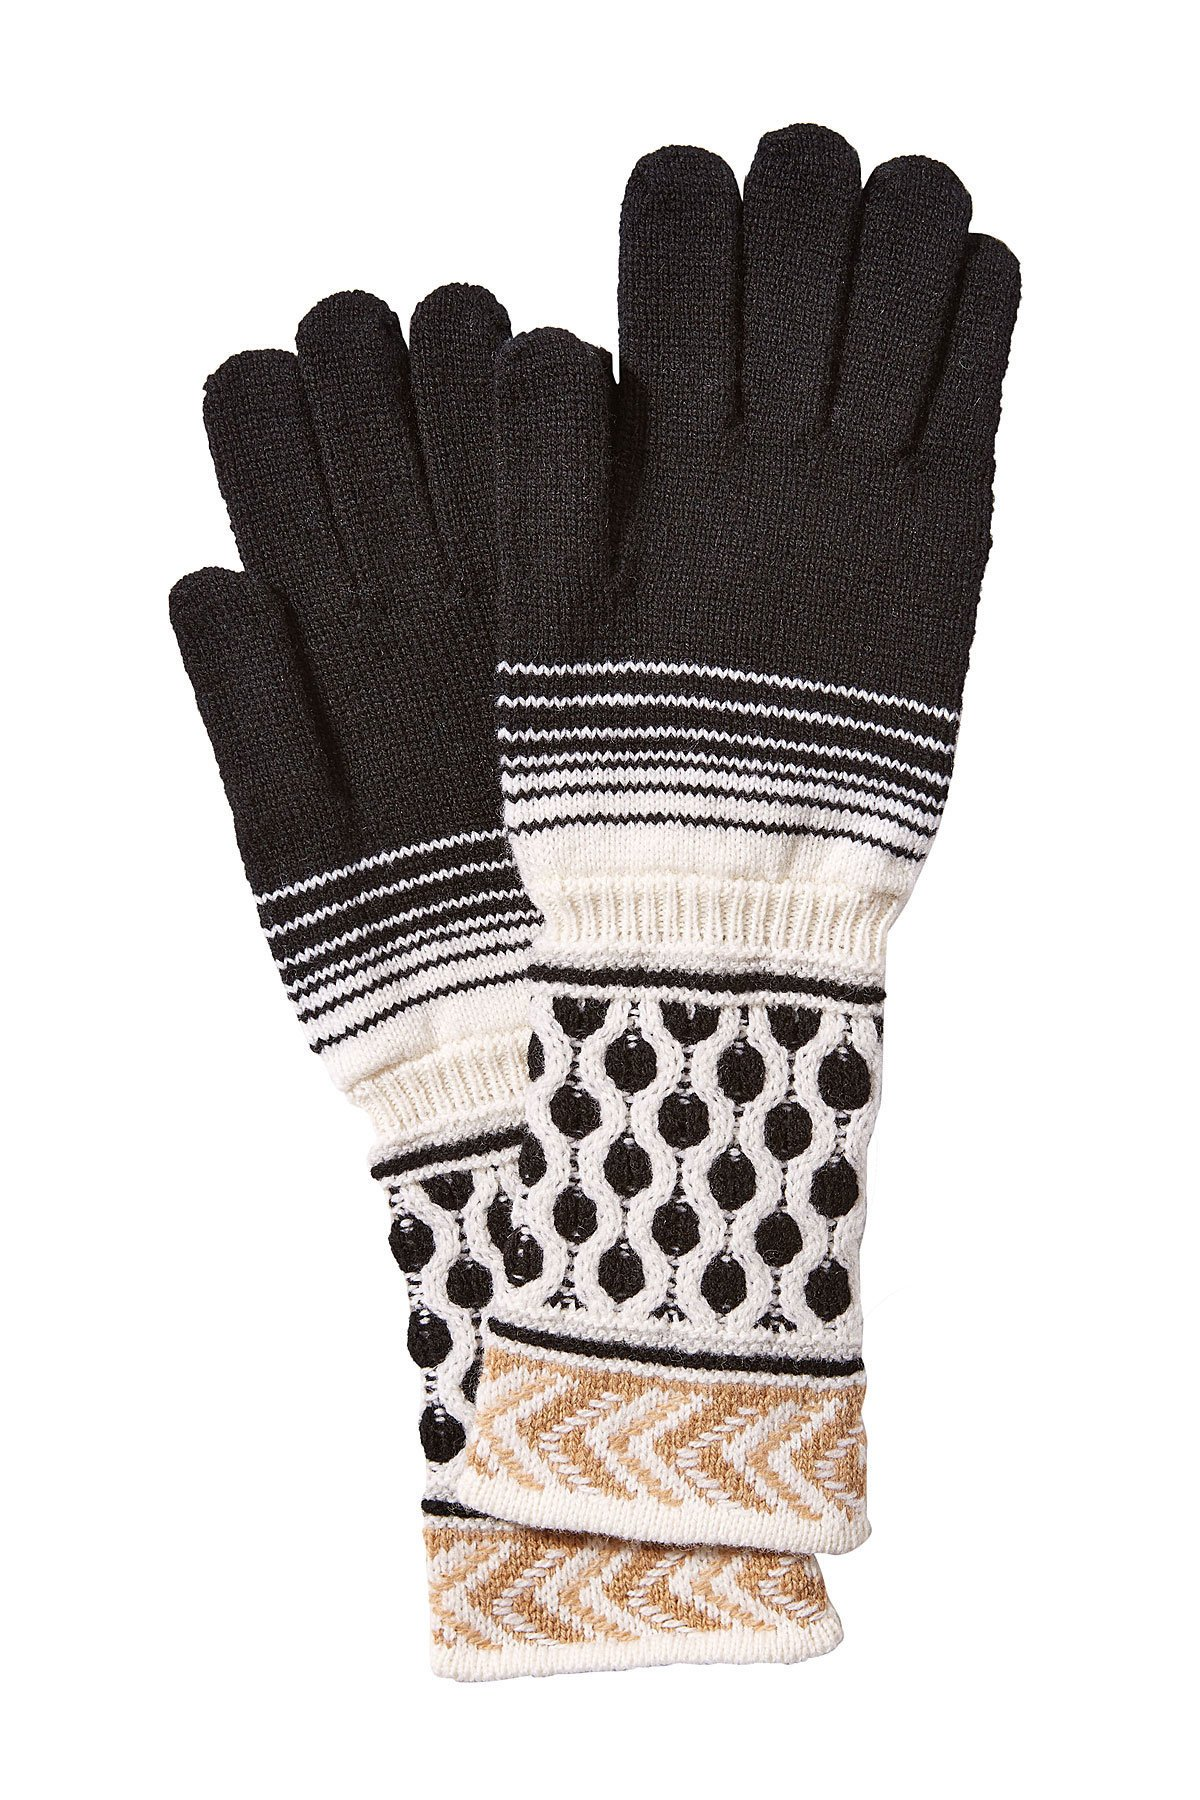 Missoni Black and Tan 100% Wool Gloves M